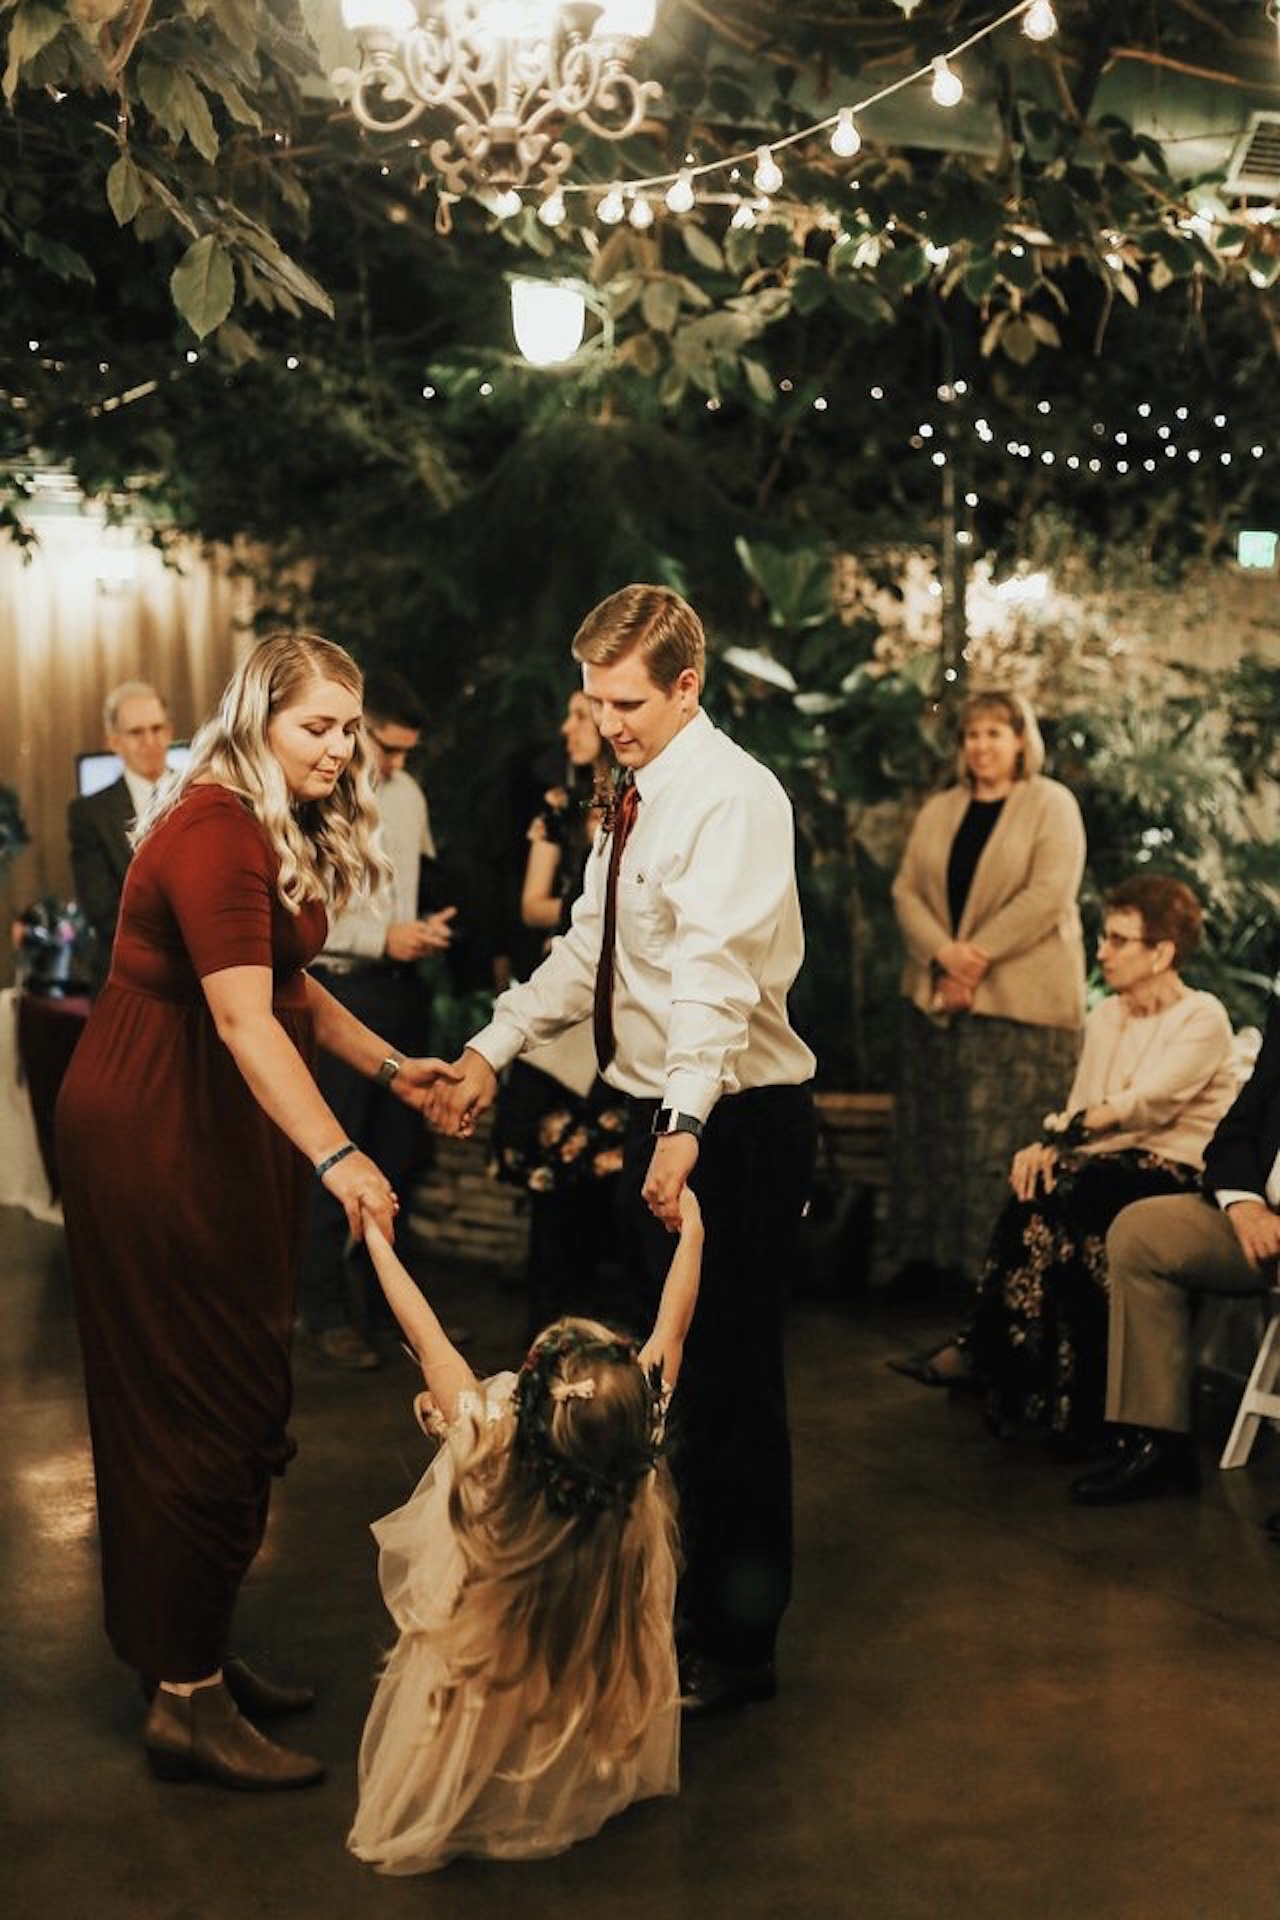 A photo of the writer dancing with a man and a child at a wedding.